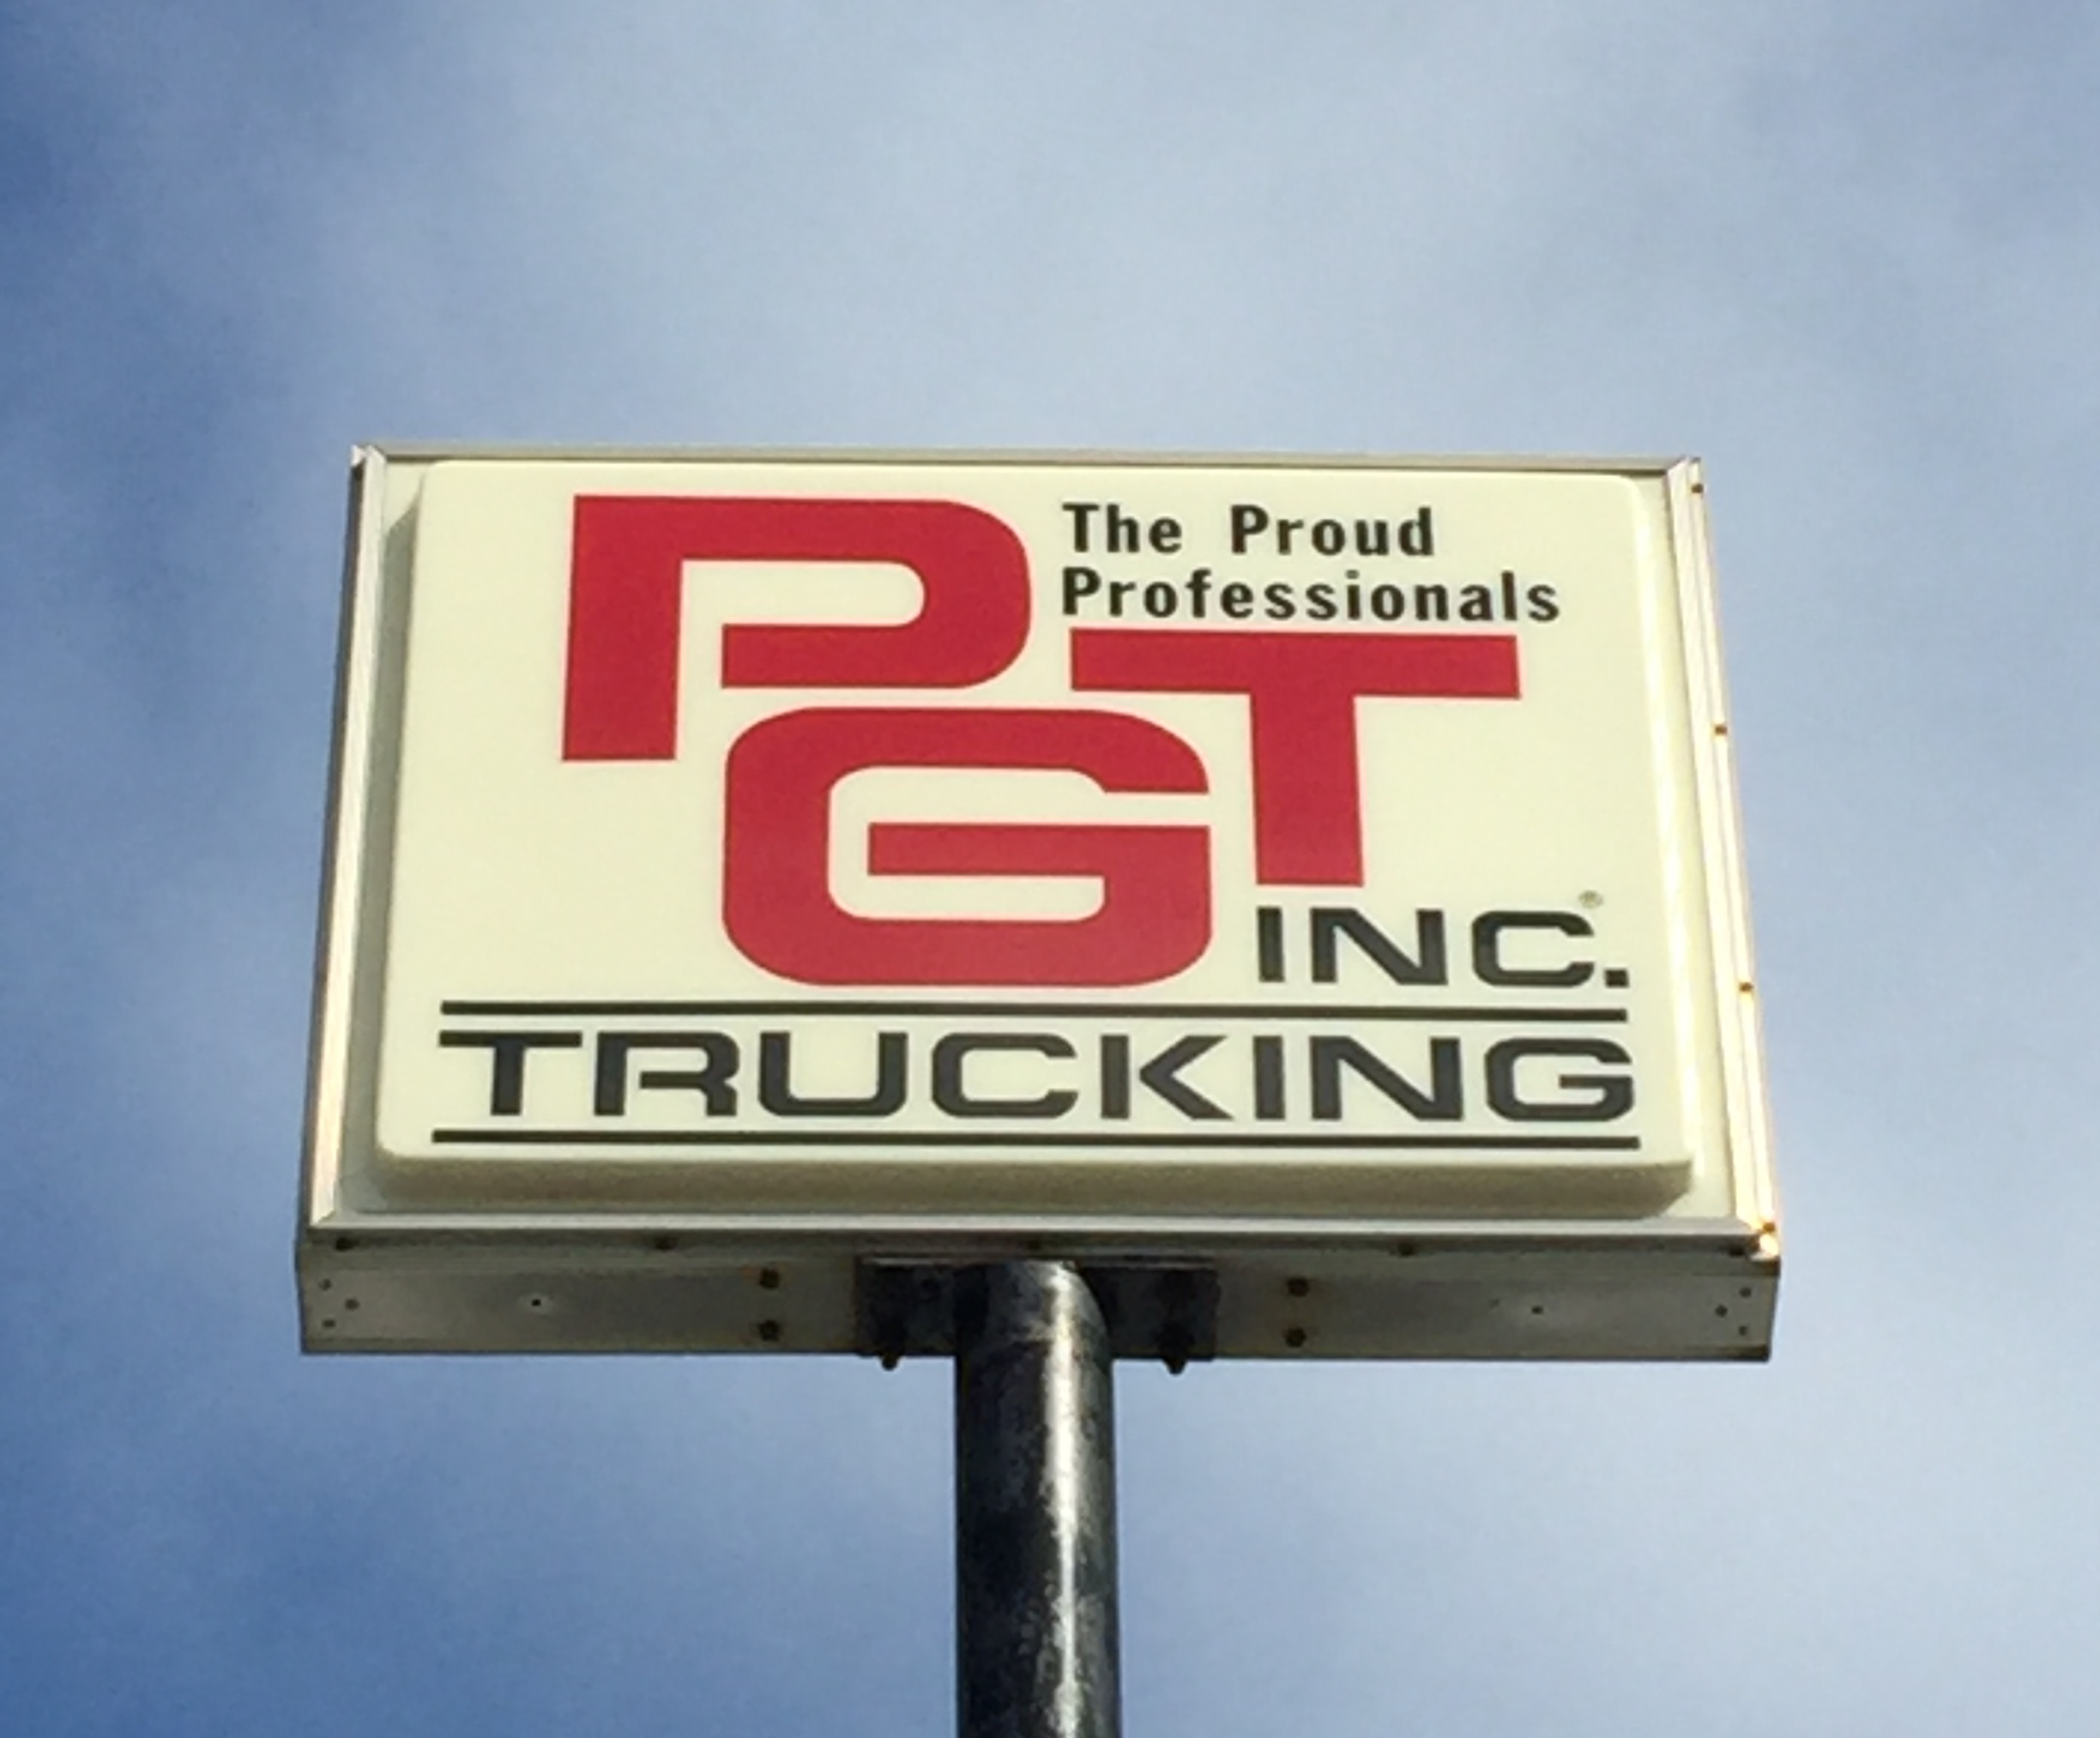 PGT Dearborn Terminal - Dearborn Terminal has been a mainstay in the PGT network for 40+ years servicing Michigan and Ontario, Canada. Secured Parking, 24hr driver lounge and shower, free WIFI. 1620 Miller Road, Dearborn, MI 48120 313-843-9400 313-843-0772 fax detroit-grp@pgttrucking.com